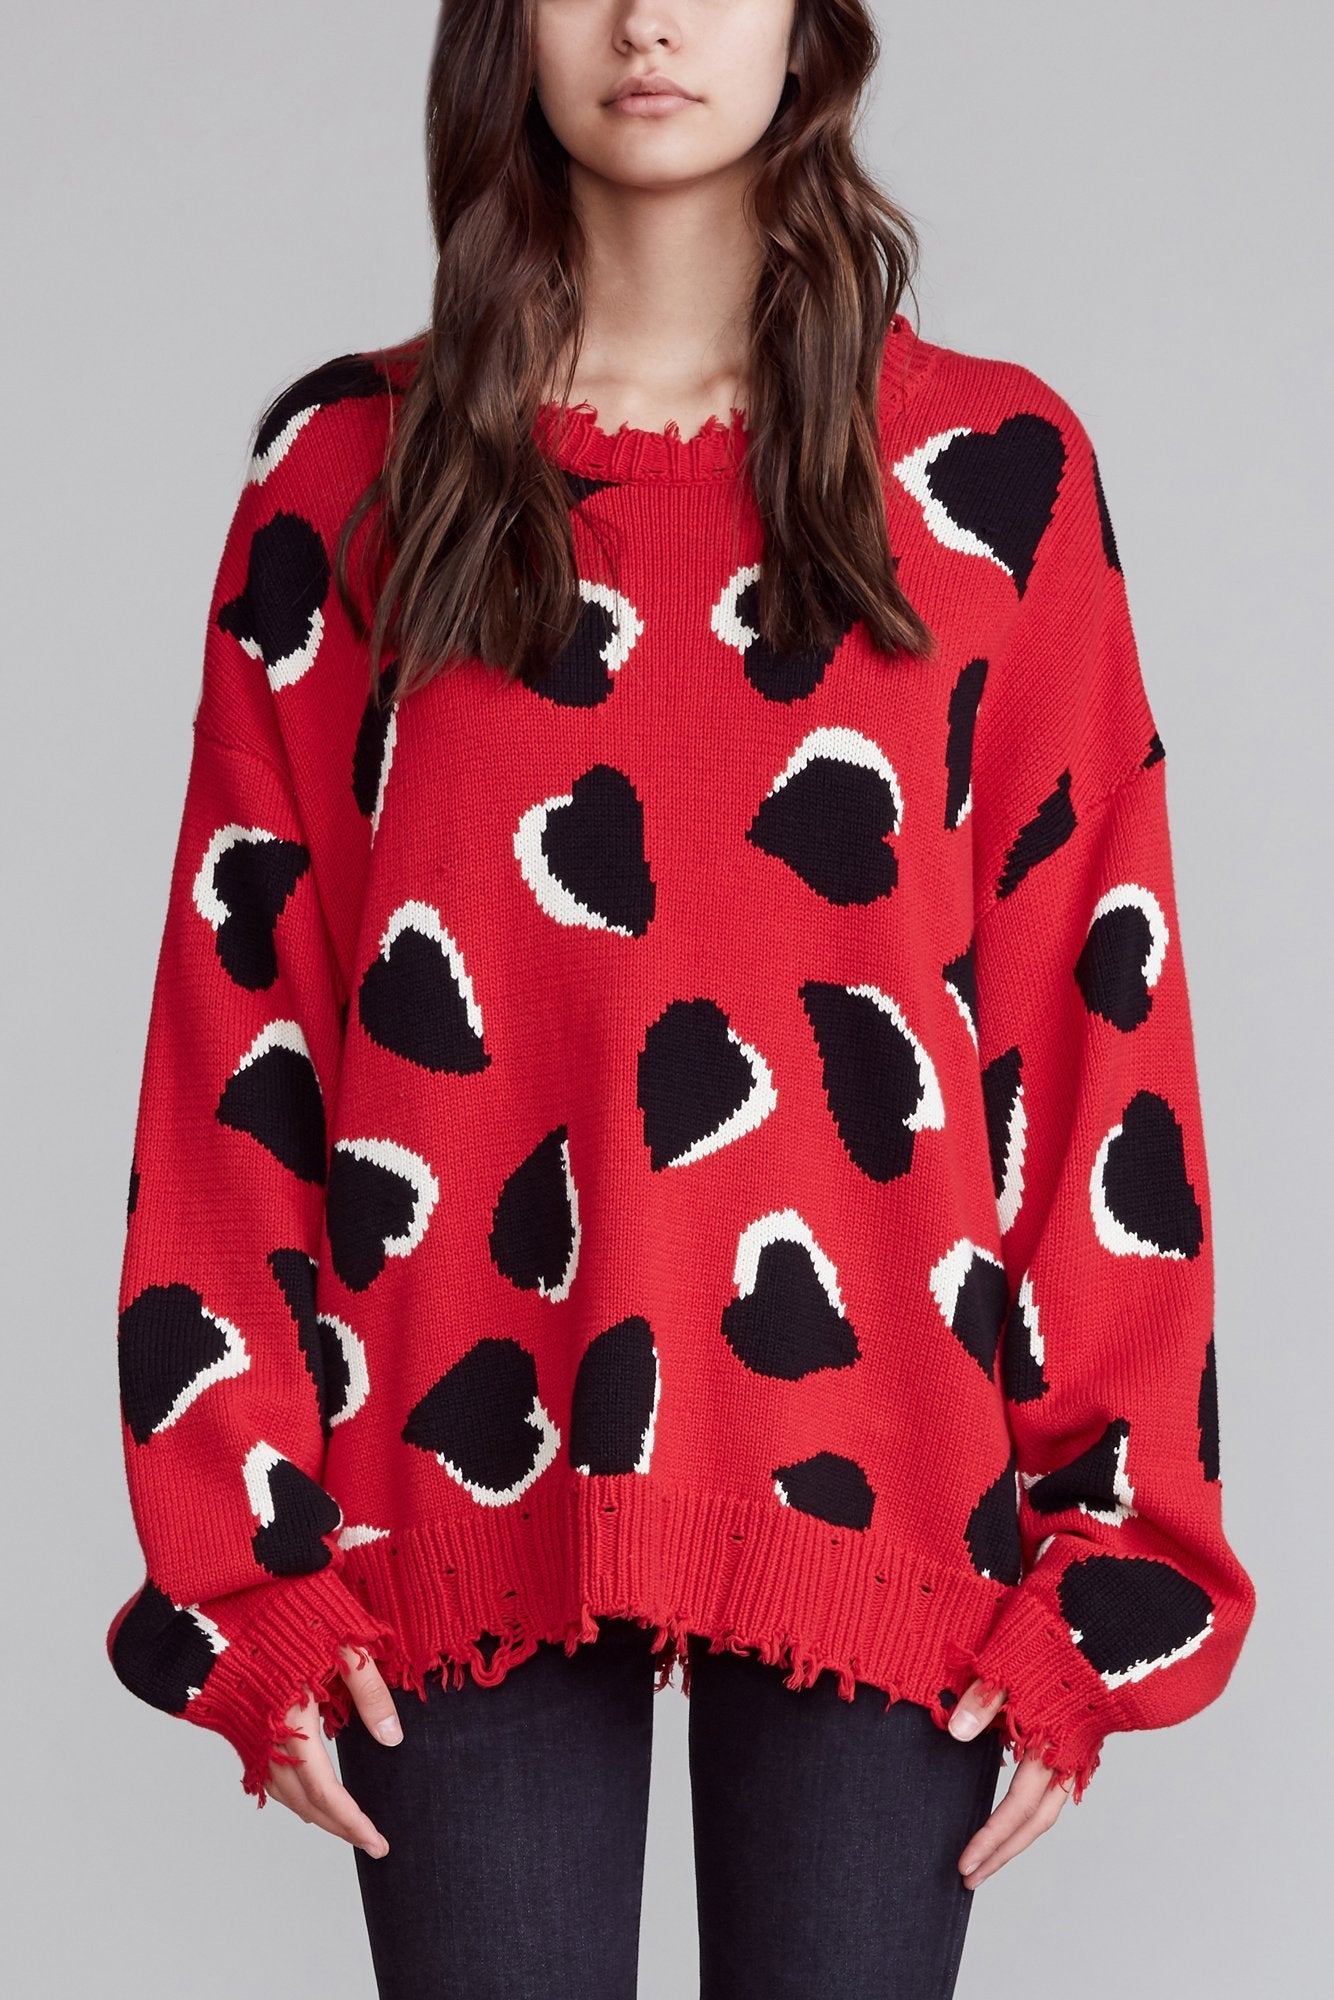 R13 Hearts Oversized Sweater -Red